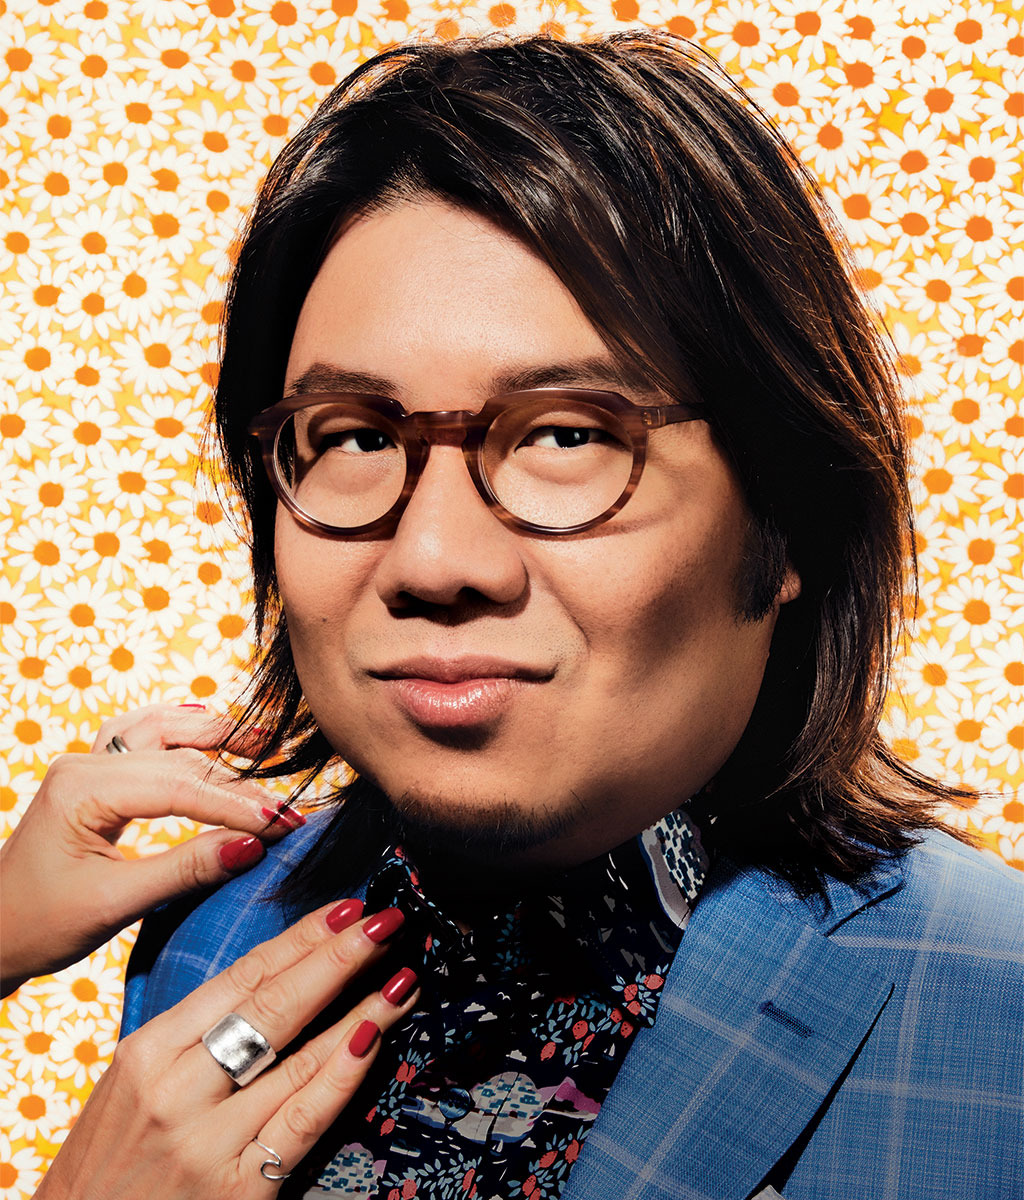 Kevin Kwan is probably crazy rich too by now.